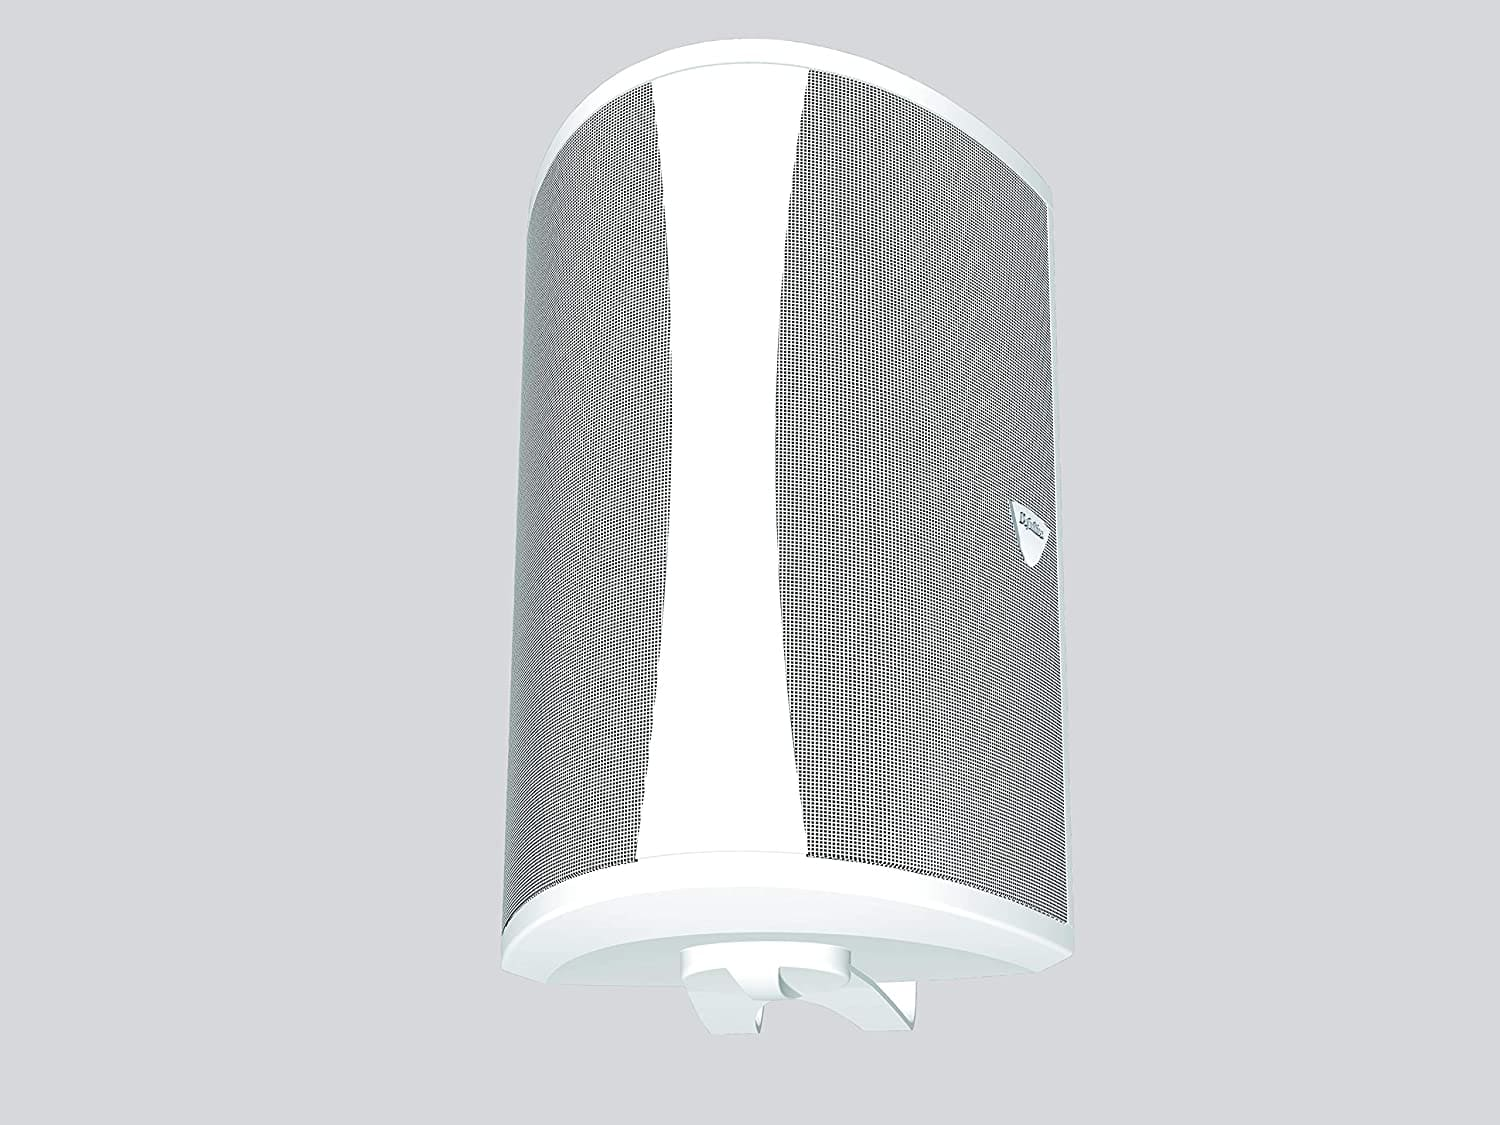 Definitive Technology AW5500 All-Weather Outdoor Speaker (White) $99.99